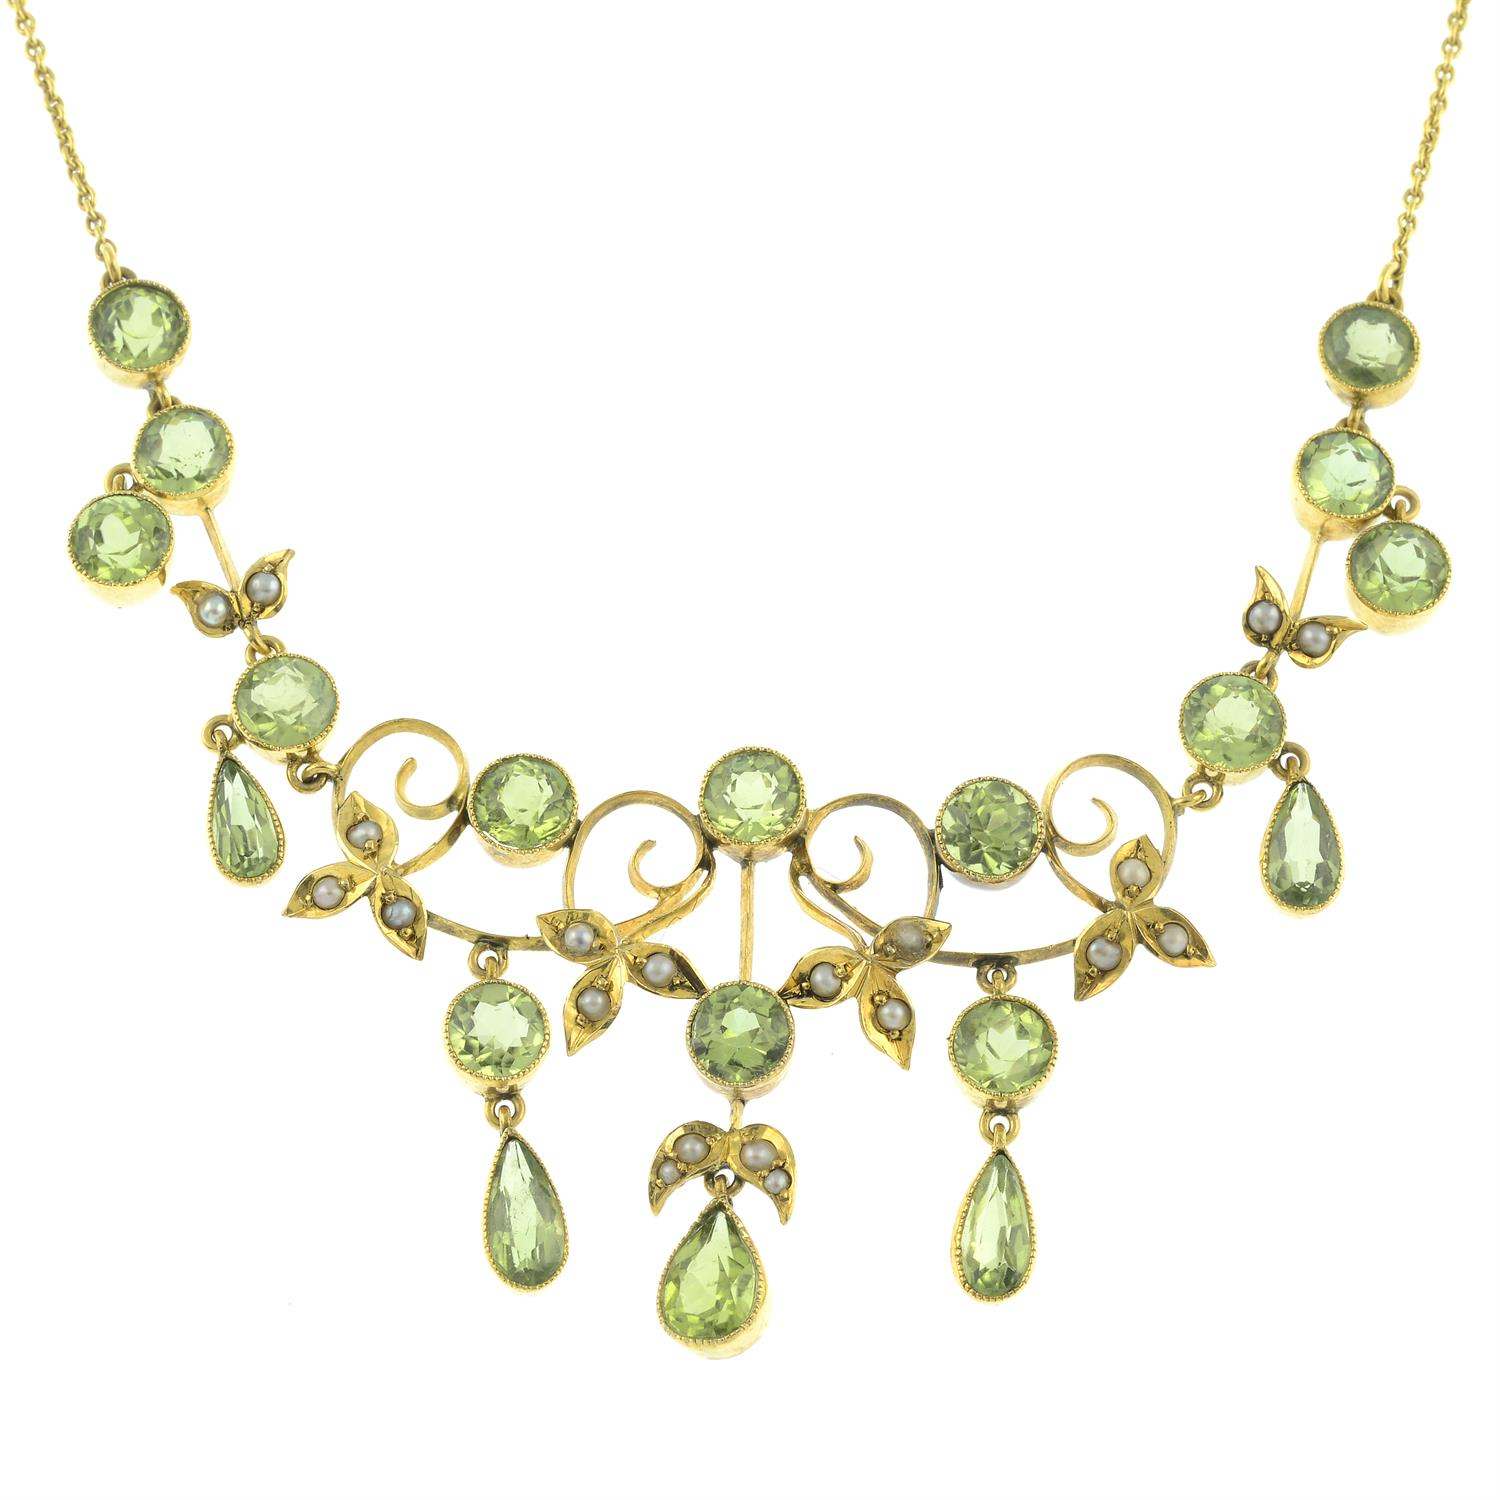 An early 20th century 9ct gold peridot and split pearl fringe necklace. - Image 2 of 5